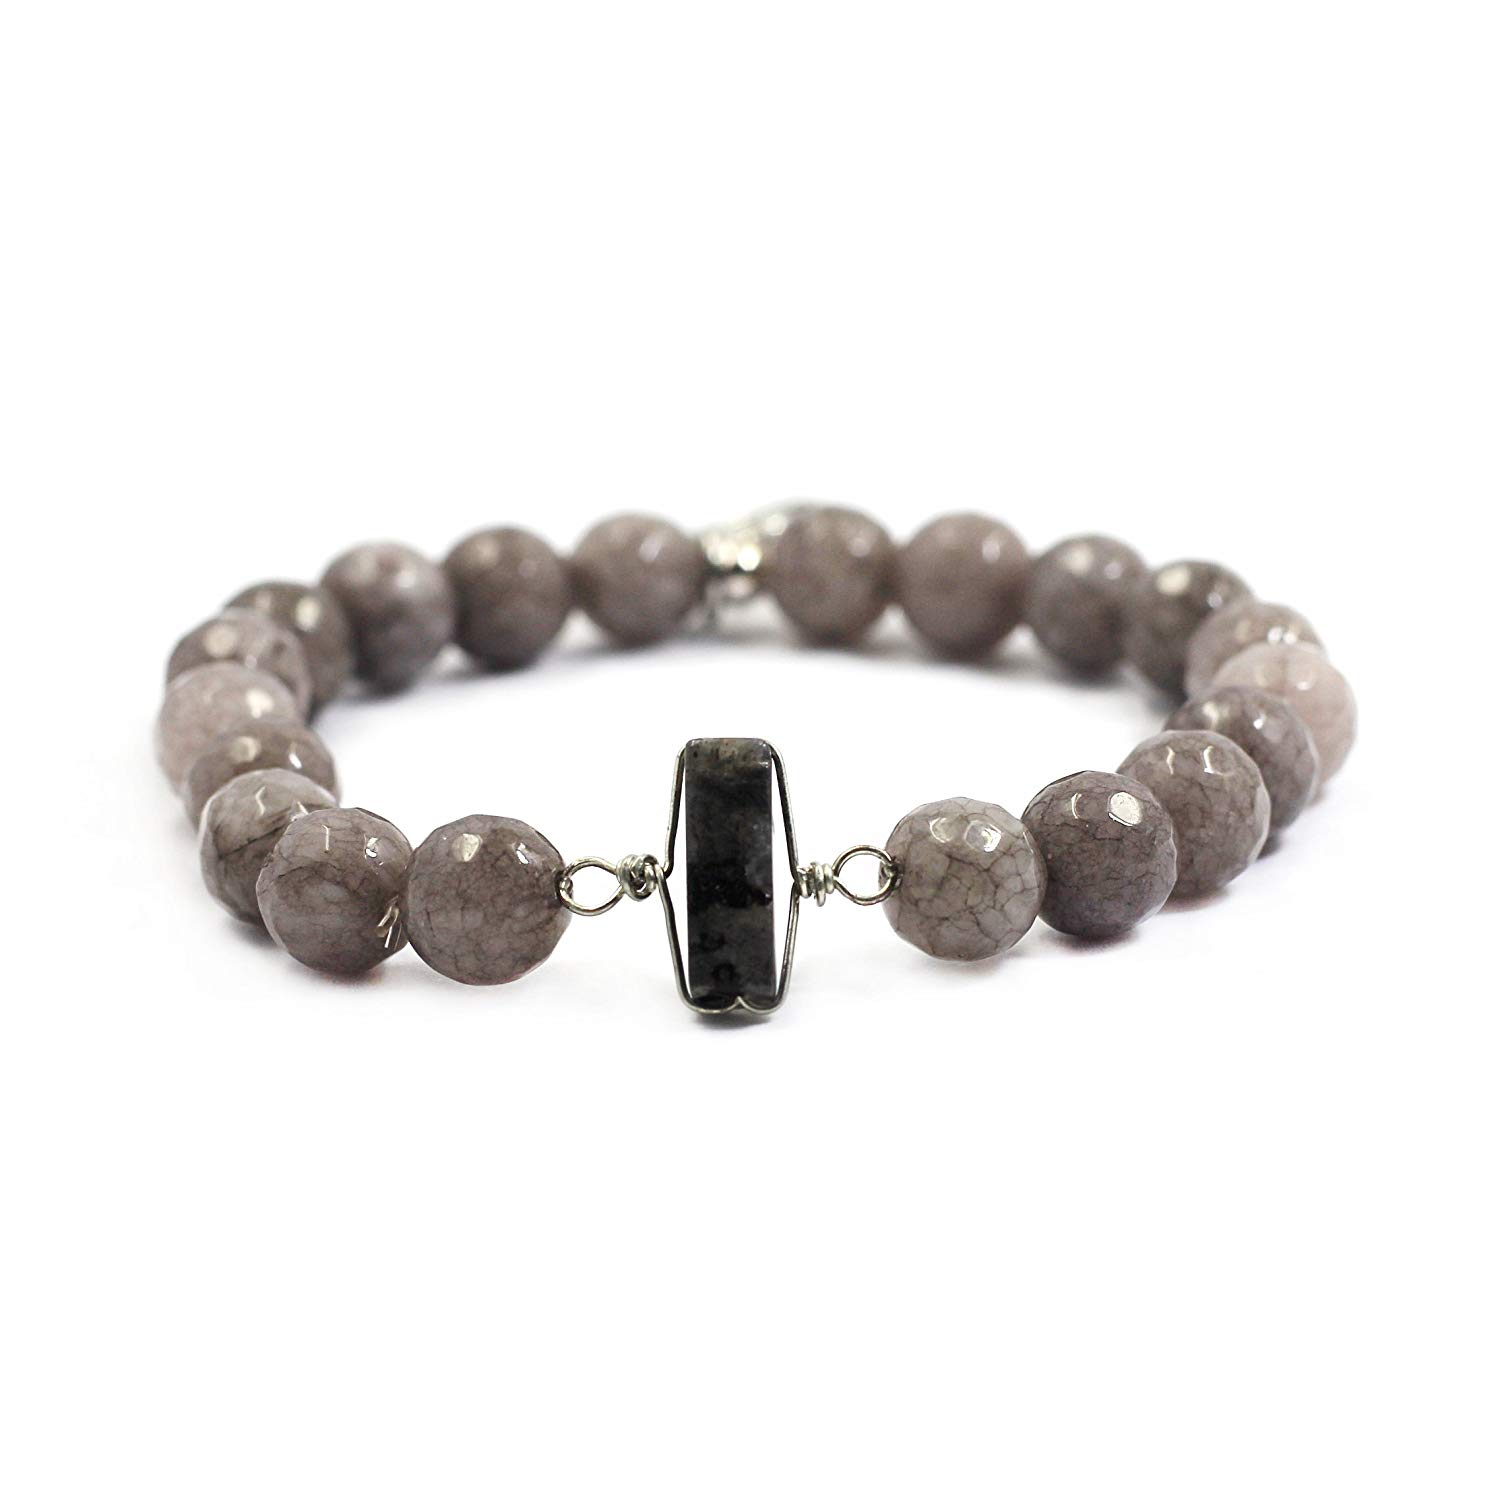 tom+alice Natural Gemstone 8MM Healing Beads Reiki Chakra Stretch Beaded Bracelets with Middle Ornament Womens Fashion (Naked-Gray Silver)